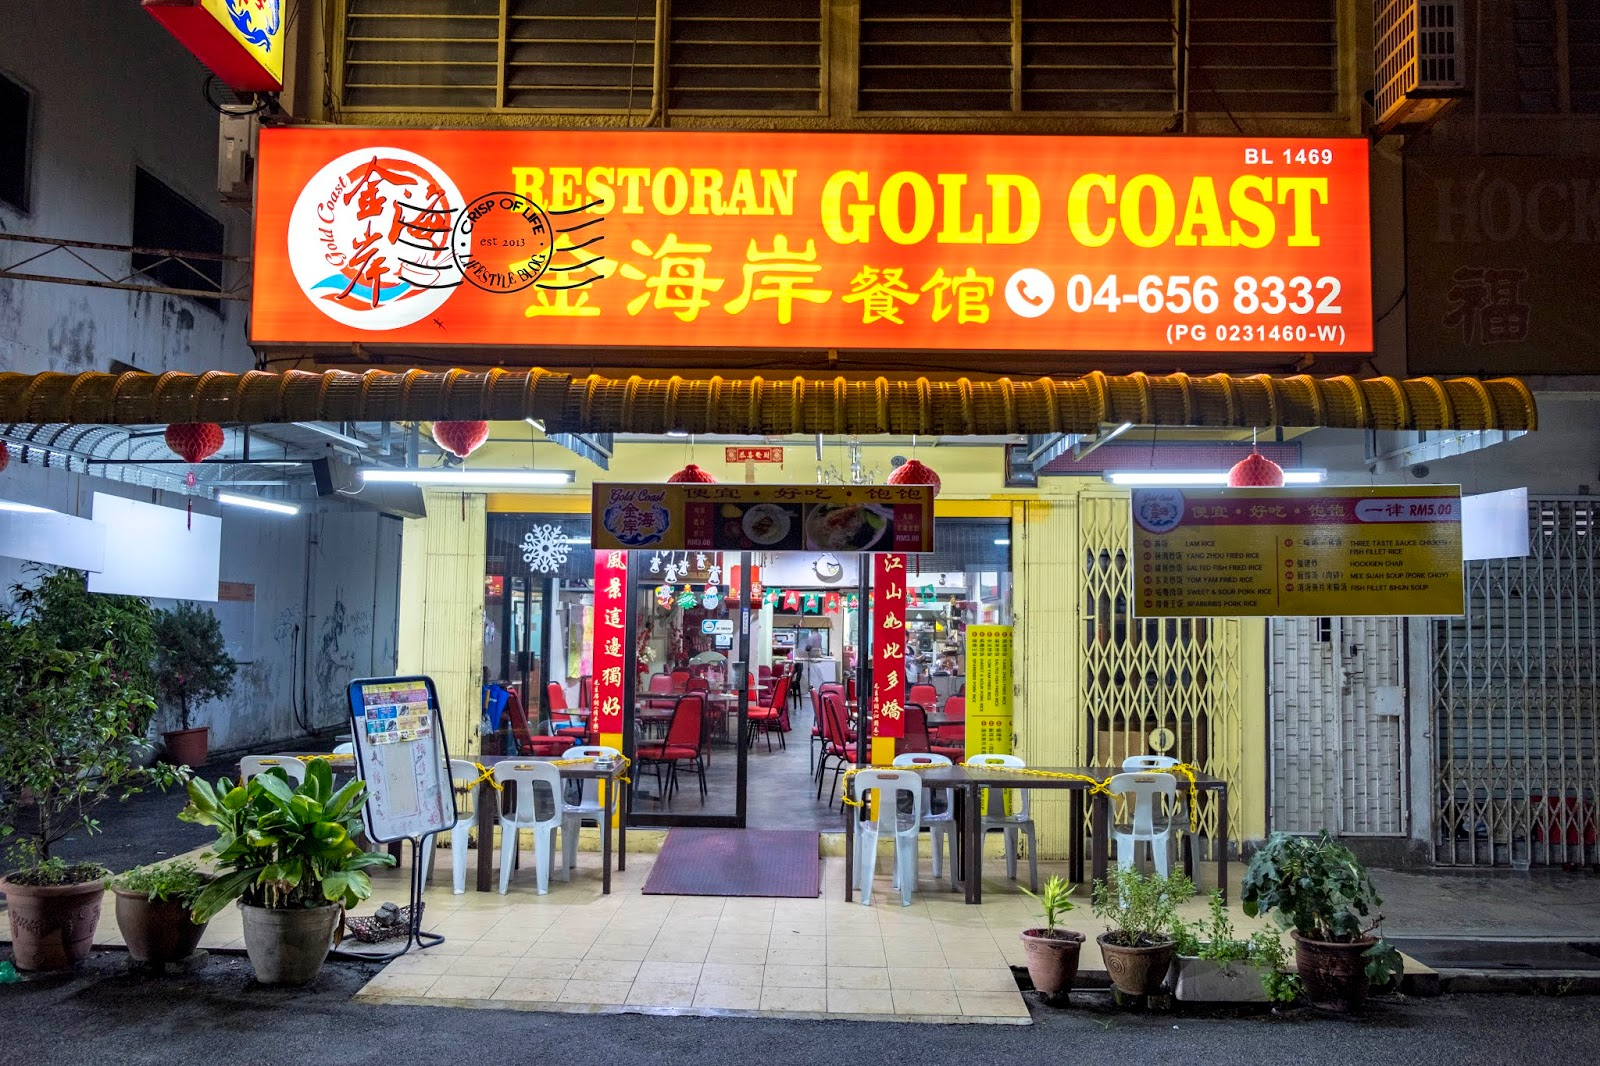 Gold Coast Restaurant 金海岸餐馆 at Island Park Penang